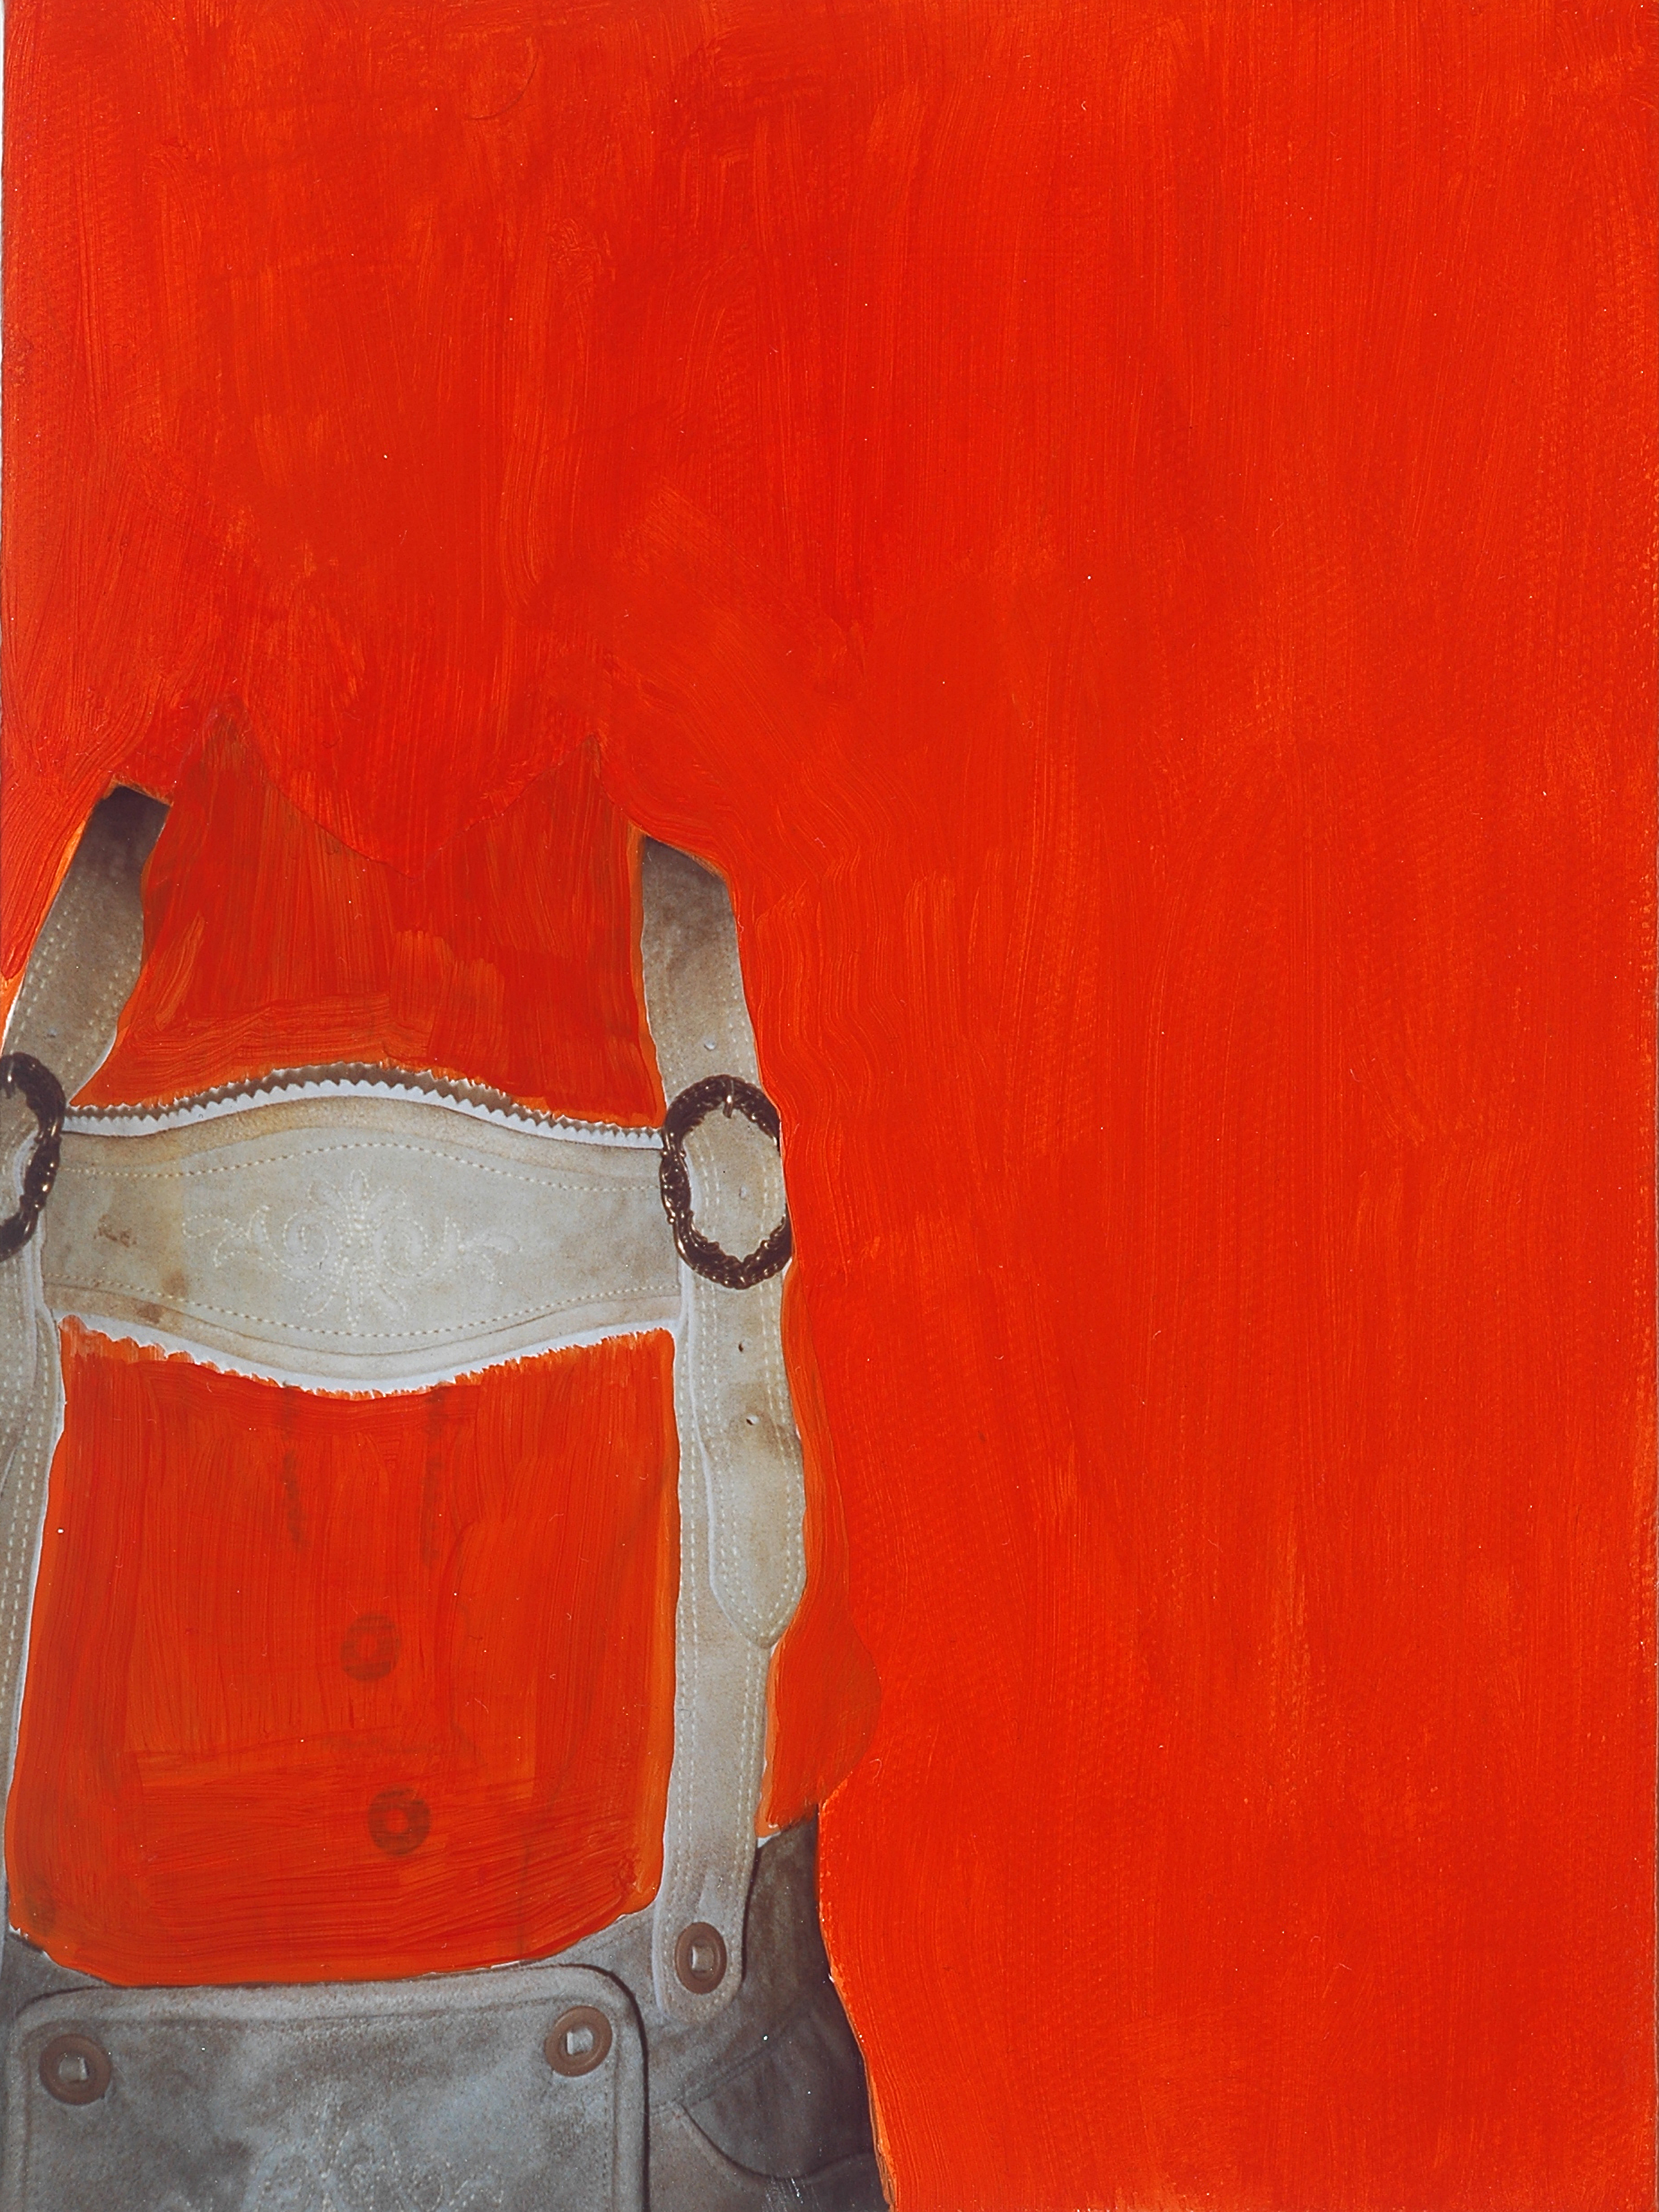 "Lederhosen. 2008. Mixed Media on Canvas. 8"" x 6"""